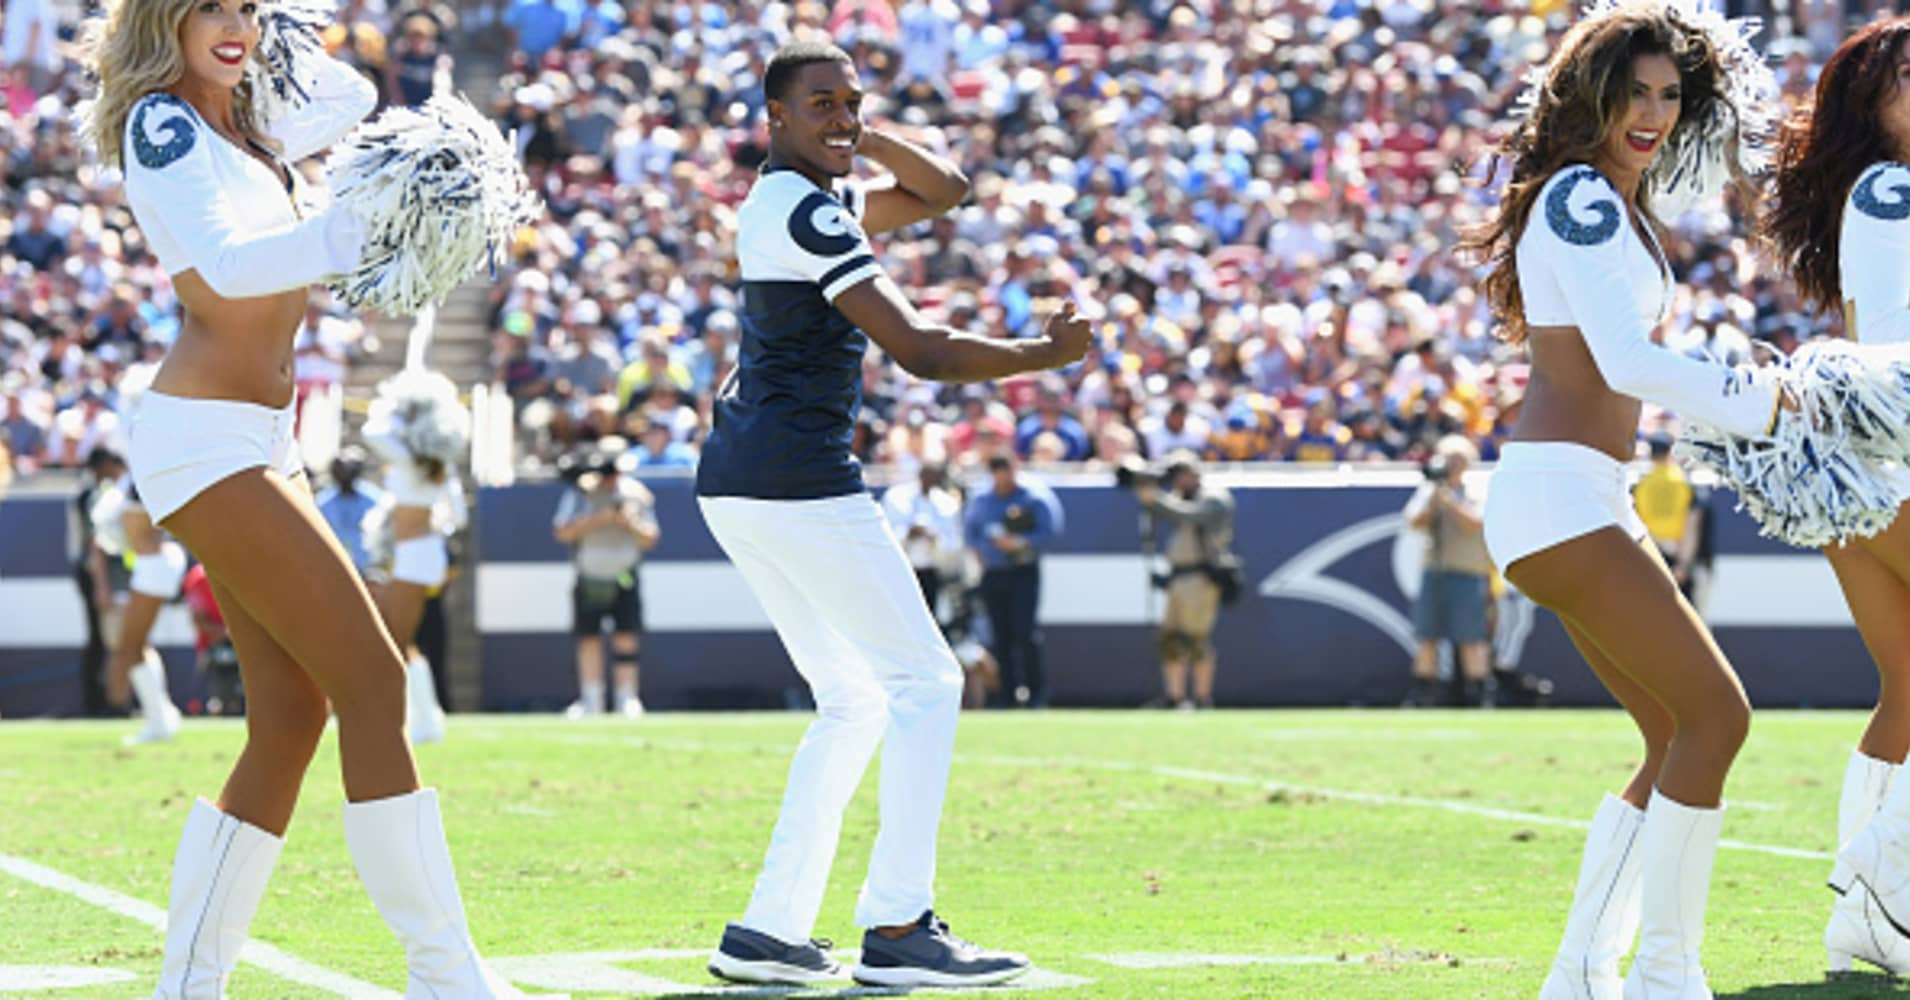 Cheerleader Quinton Peron performs during halftime of the game against the Los Angeles Chargers at Los Angeles Memorial Coliseum on September 23, 2018 in Los Angeles, California.